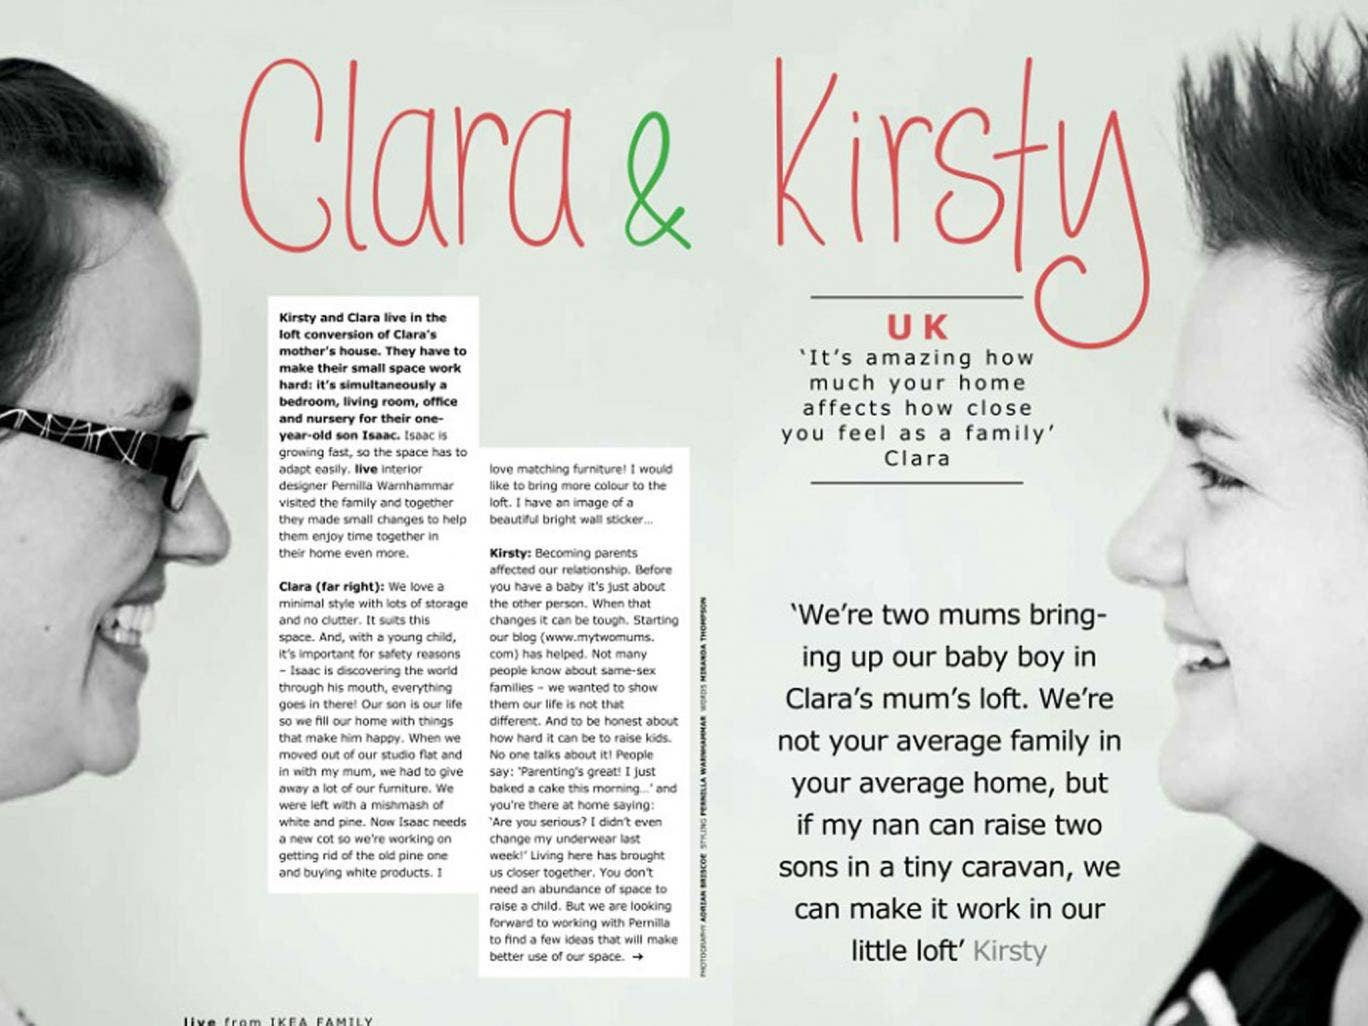 Ikea removed the above article about Clara and Kirsty, a lesbian couple from Dorset, from the Russian edition of its monthly magazine